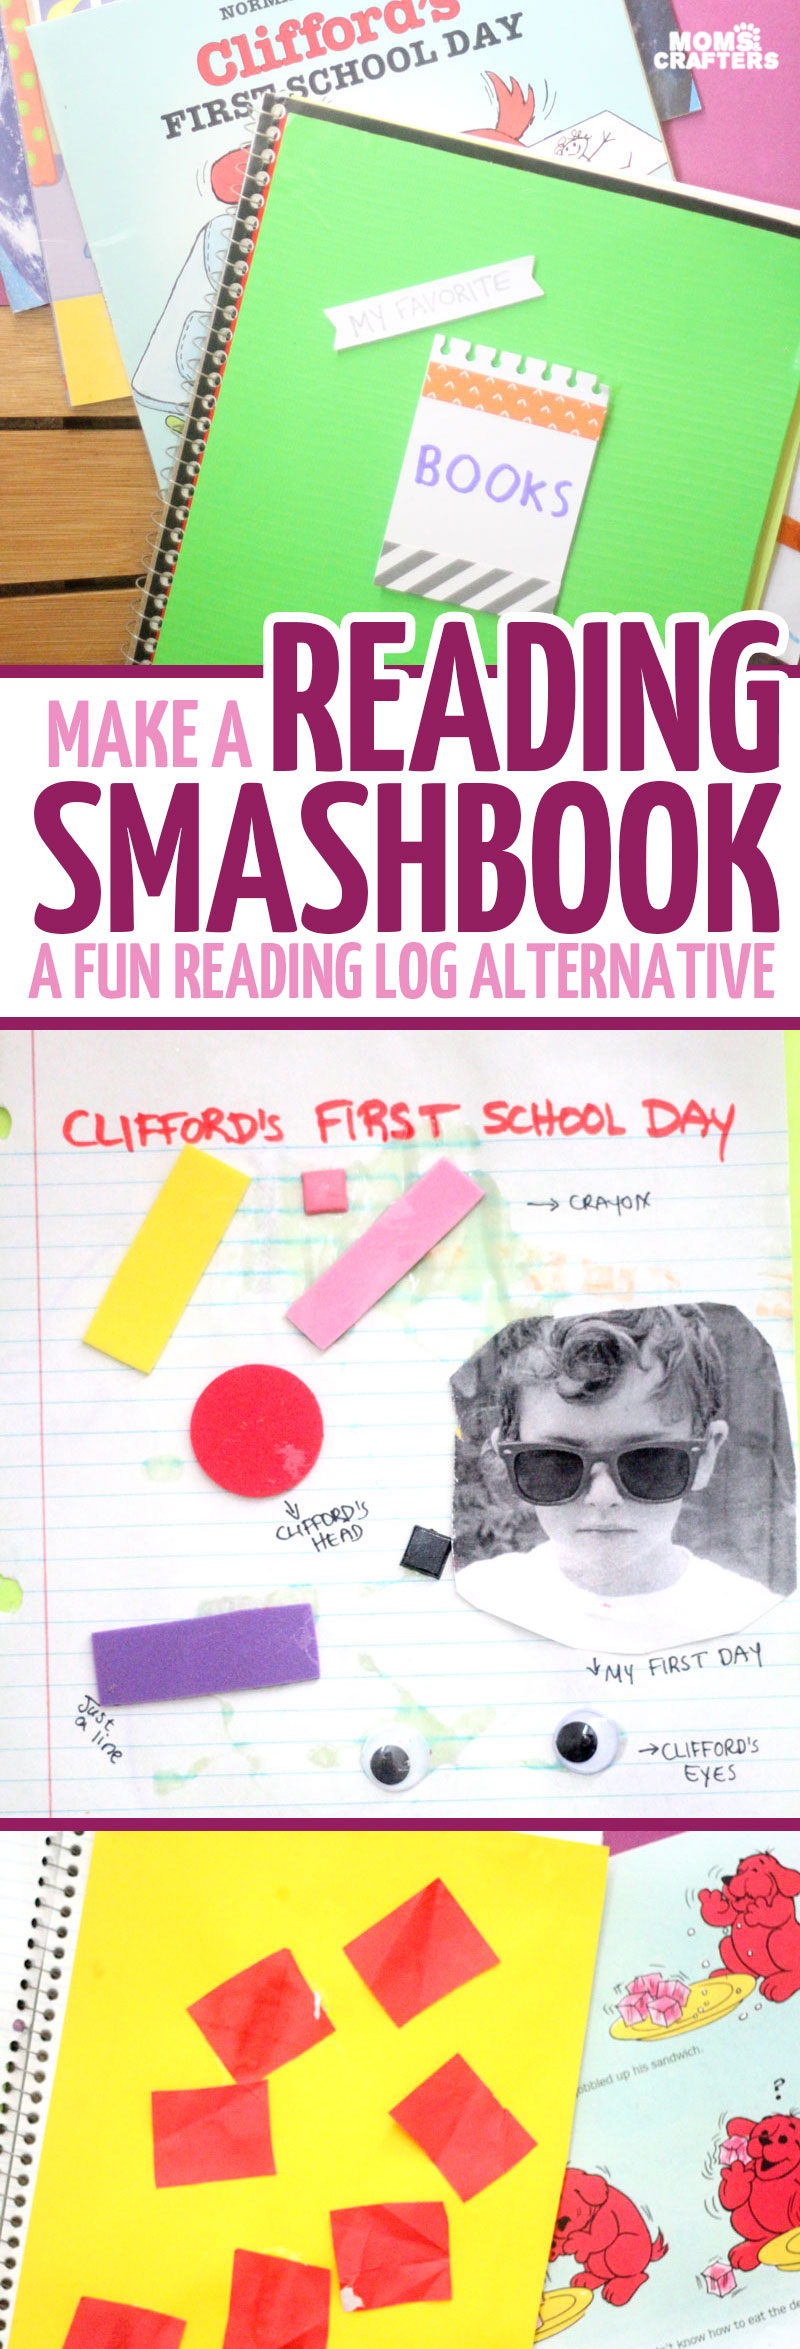 A reading smashbook is a super fun reading log alternative and a great way to inspire literacy in kids! My preschooler made one and wanted to share his ideas with you - it's super open-ended and way to make reading FUN!!